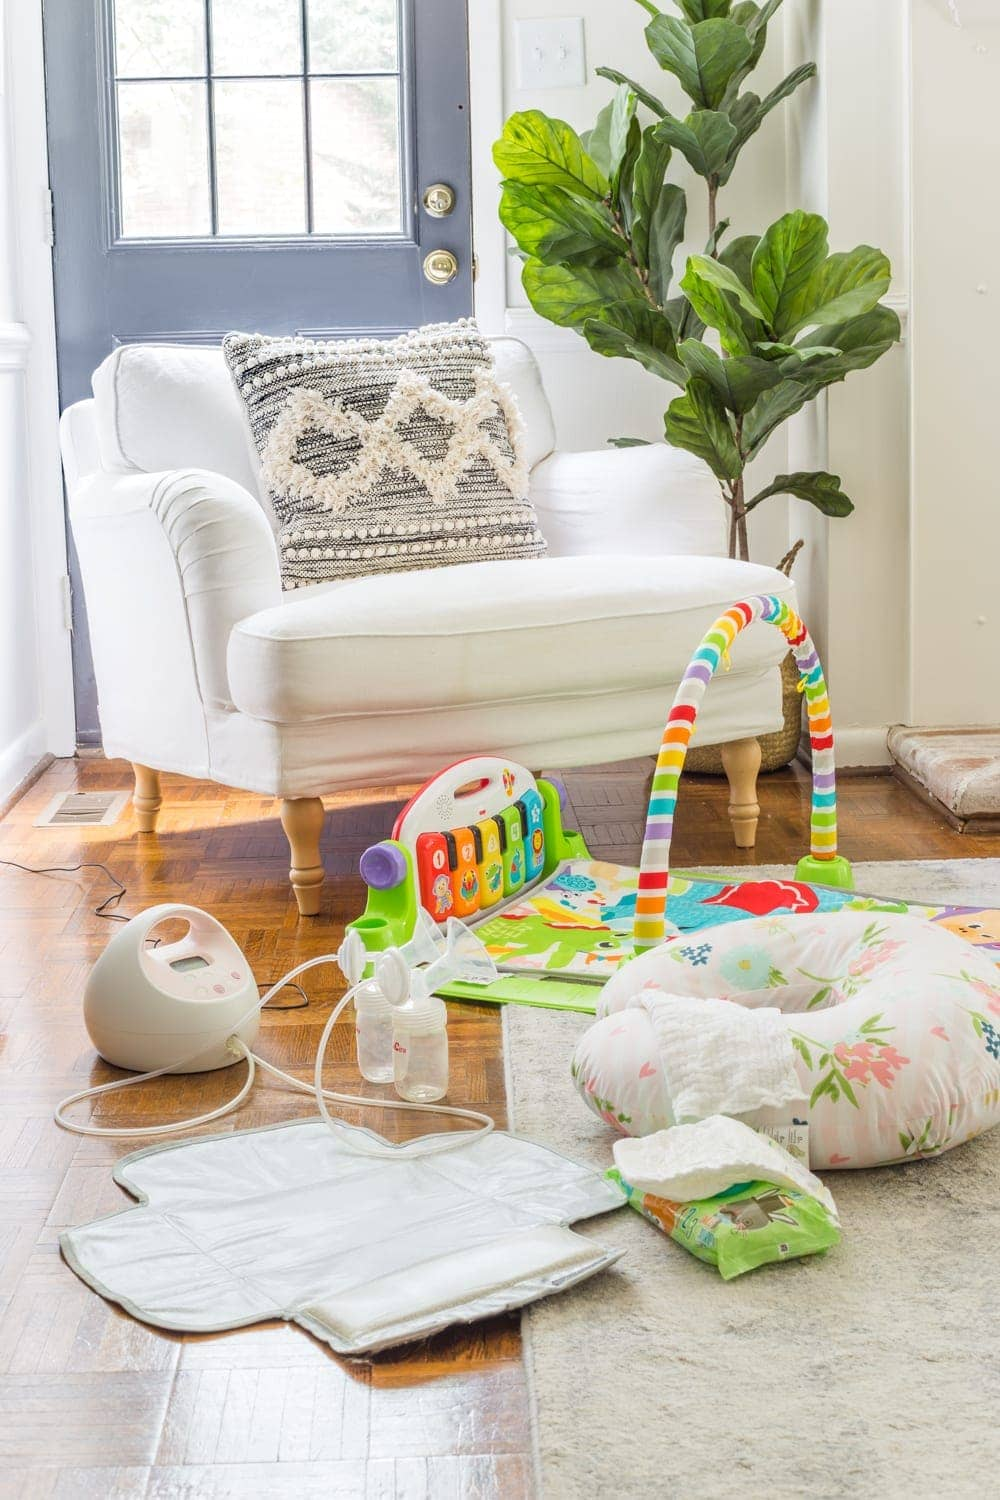 """Exclusive Pumping Hack - set up a """"cockpit"""" on the floor with a pump, Boppy for propped bottle feeding, diaper changing pad, and play mat."""